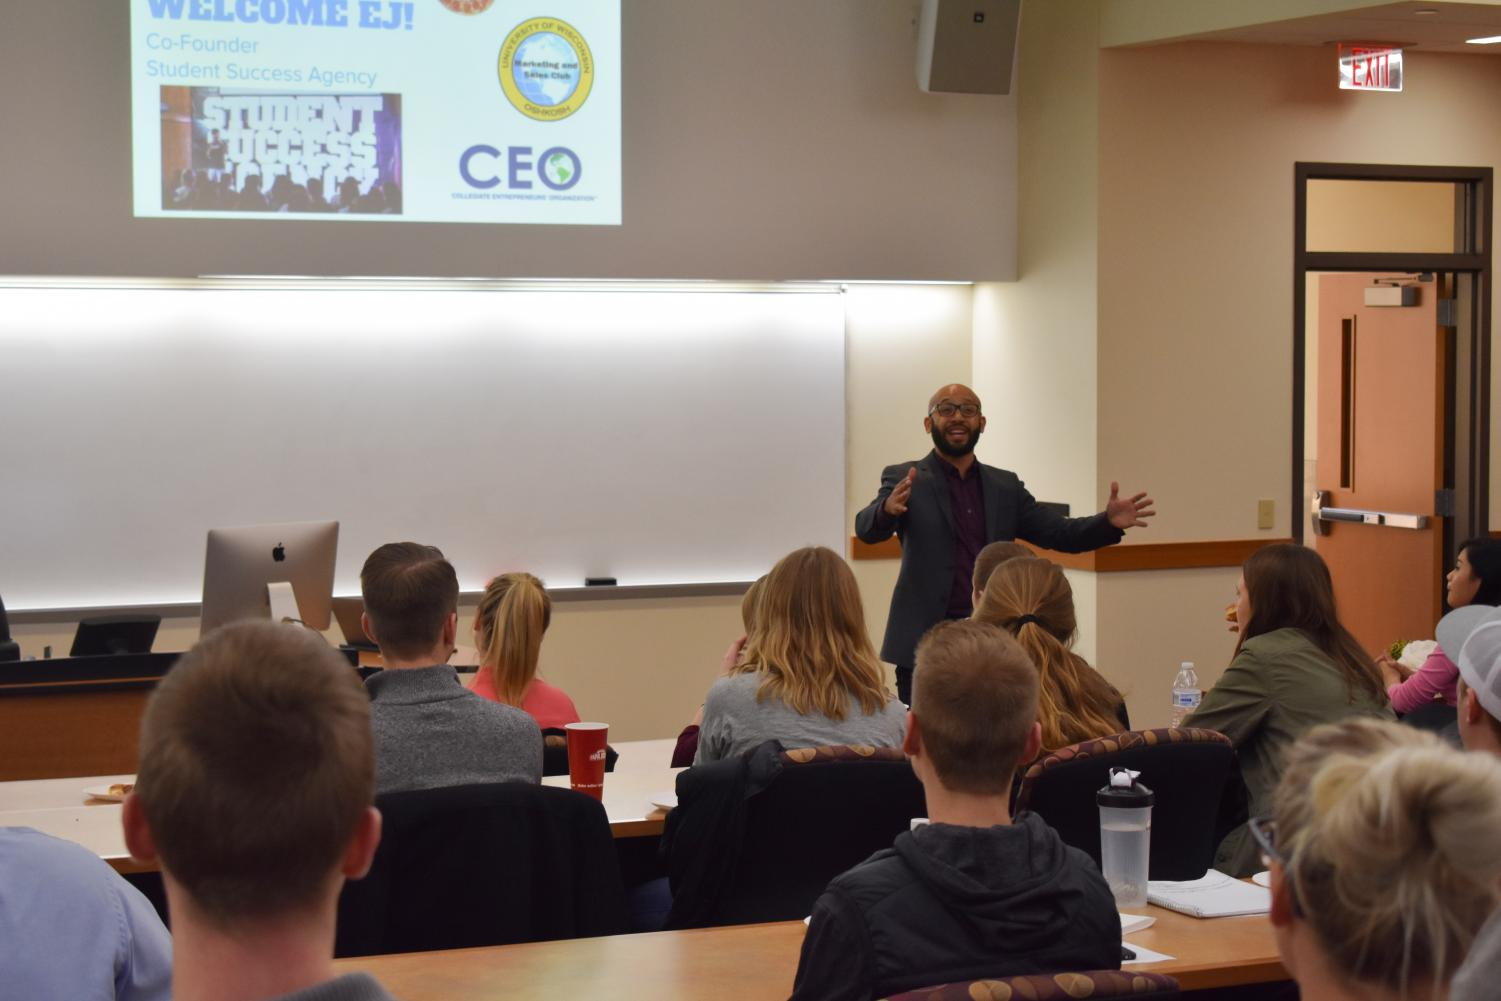 Forbes top-30 entrepreneur under the age of 30 and motivational speaker, EJ Carrion, talks to the CEO Club about student success during and after college.